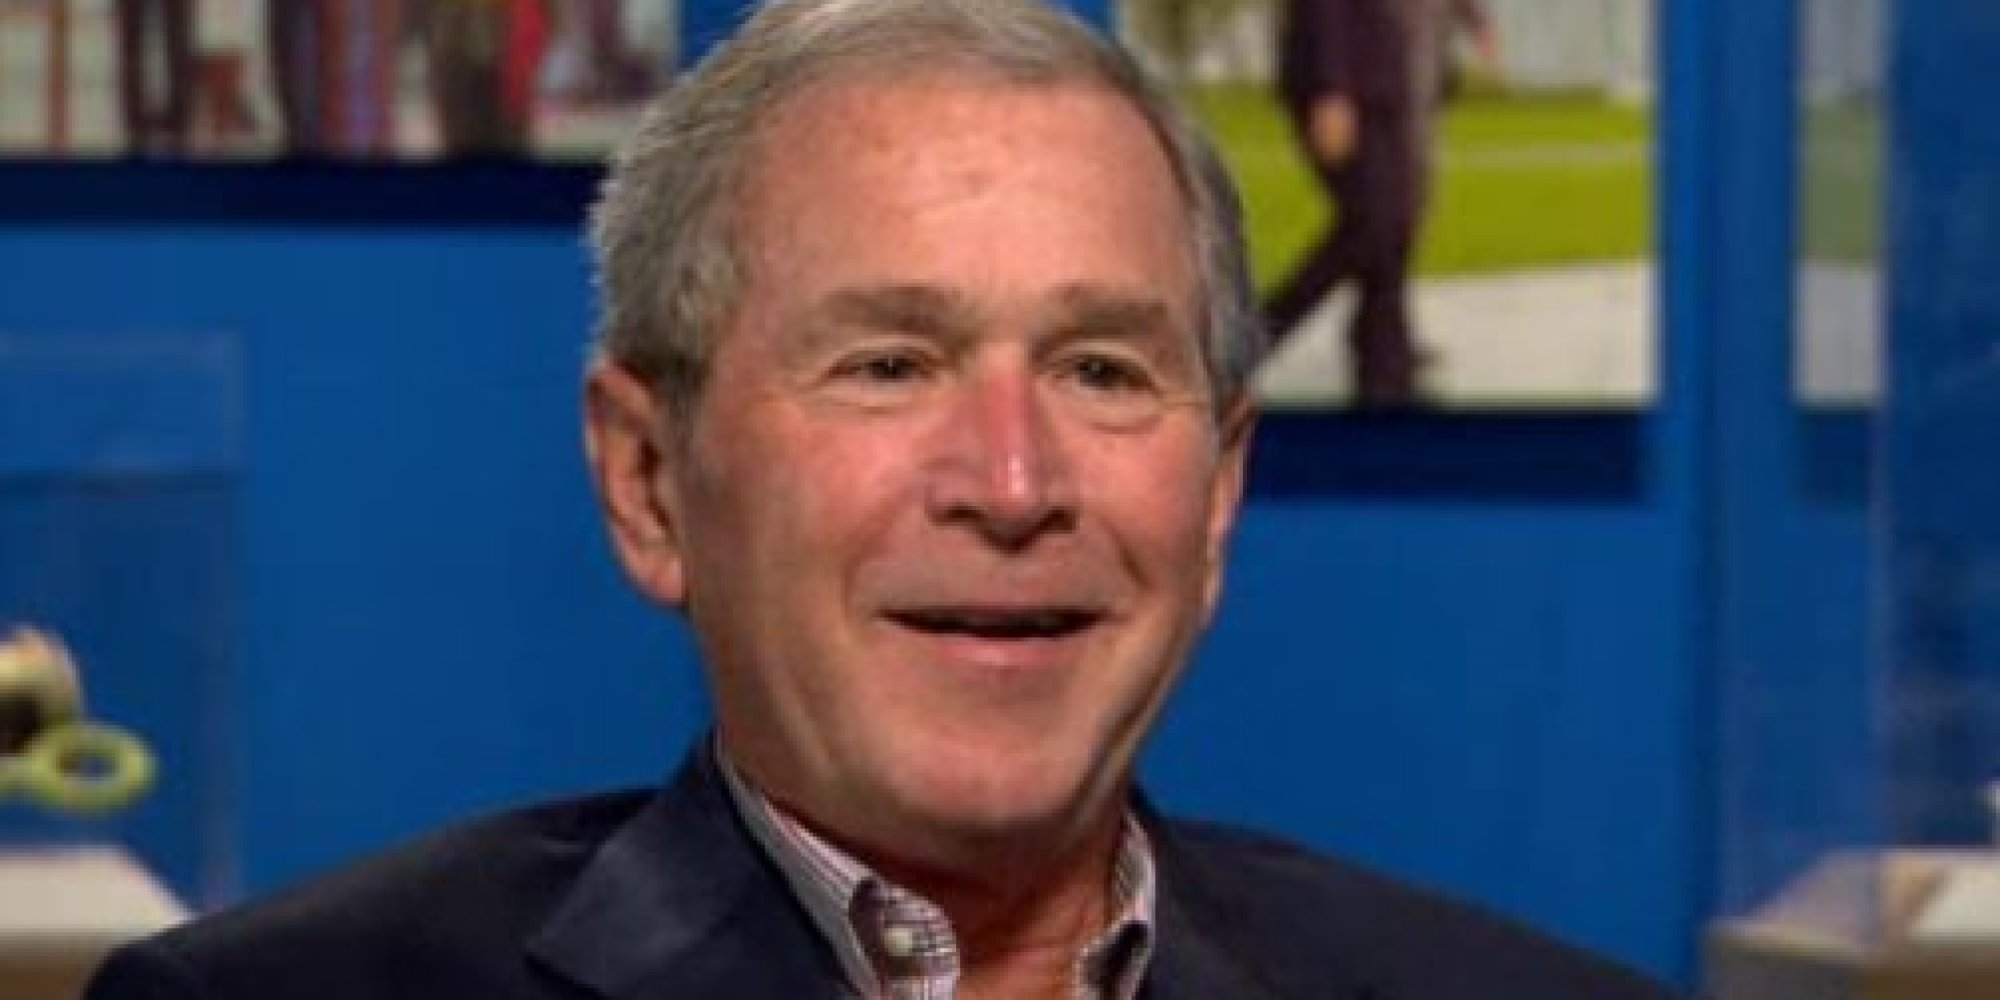 george w bush research paper Here is the text of president george w bush's address from crawford, texas, on his decision to allow federal funding for limited stem cell research good evening i appreciate you giving me a.